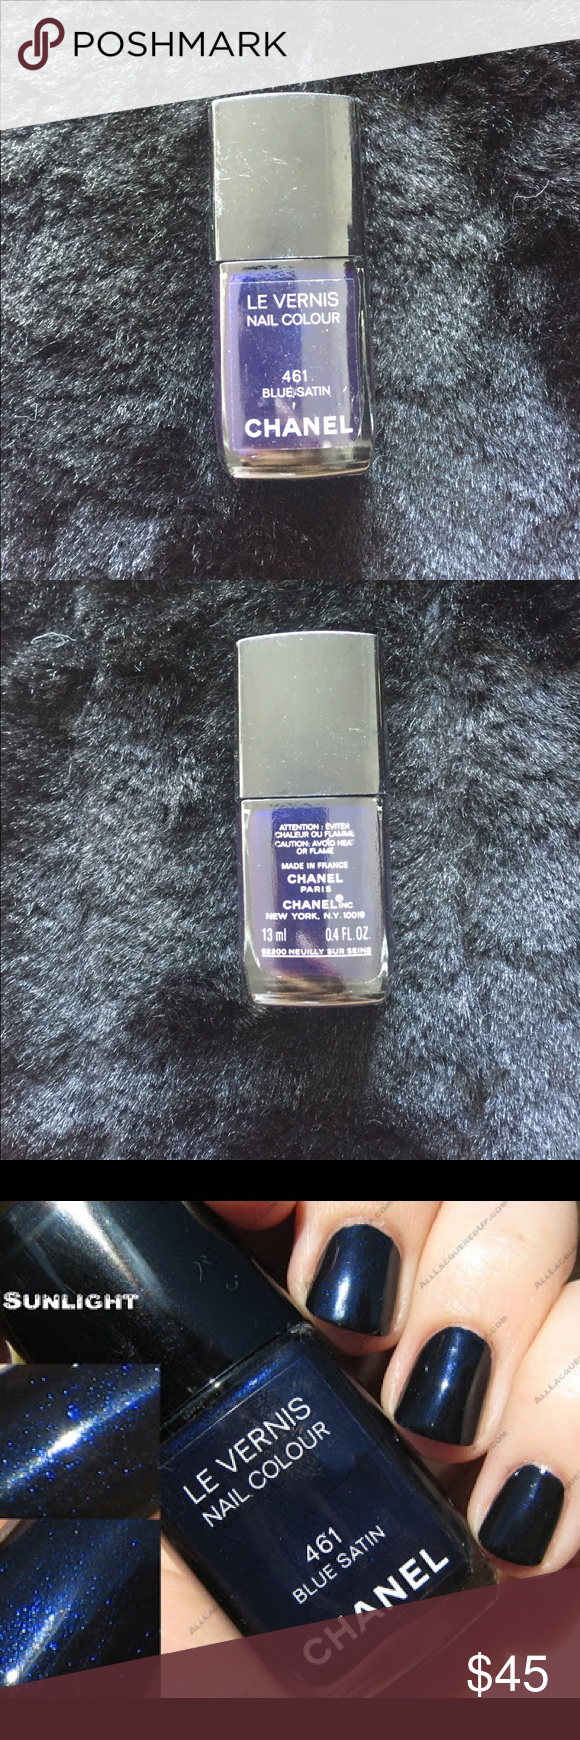 Rare Chanel Polish Blue Satin 461 Limited edition and Rare color. No ...